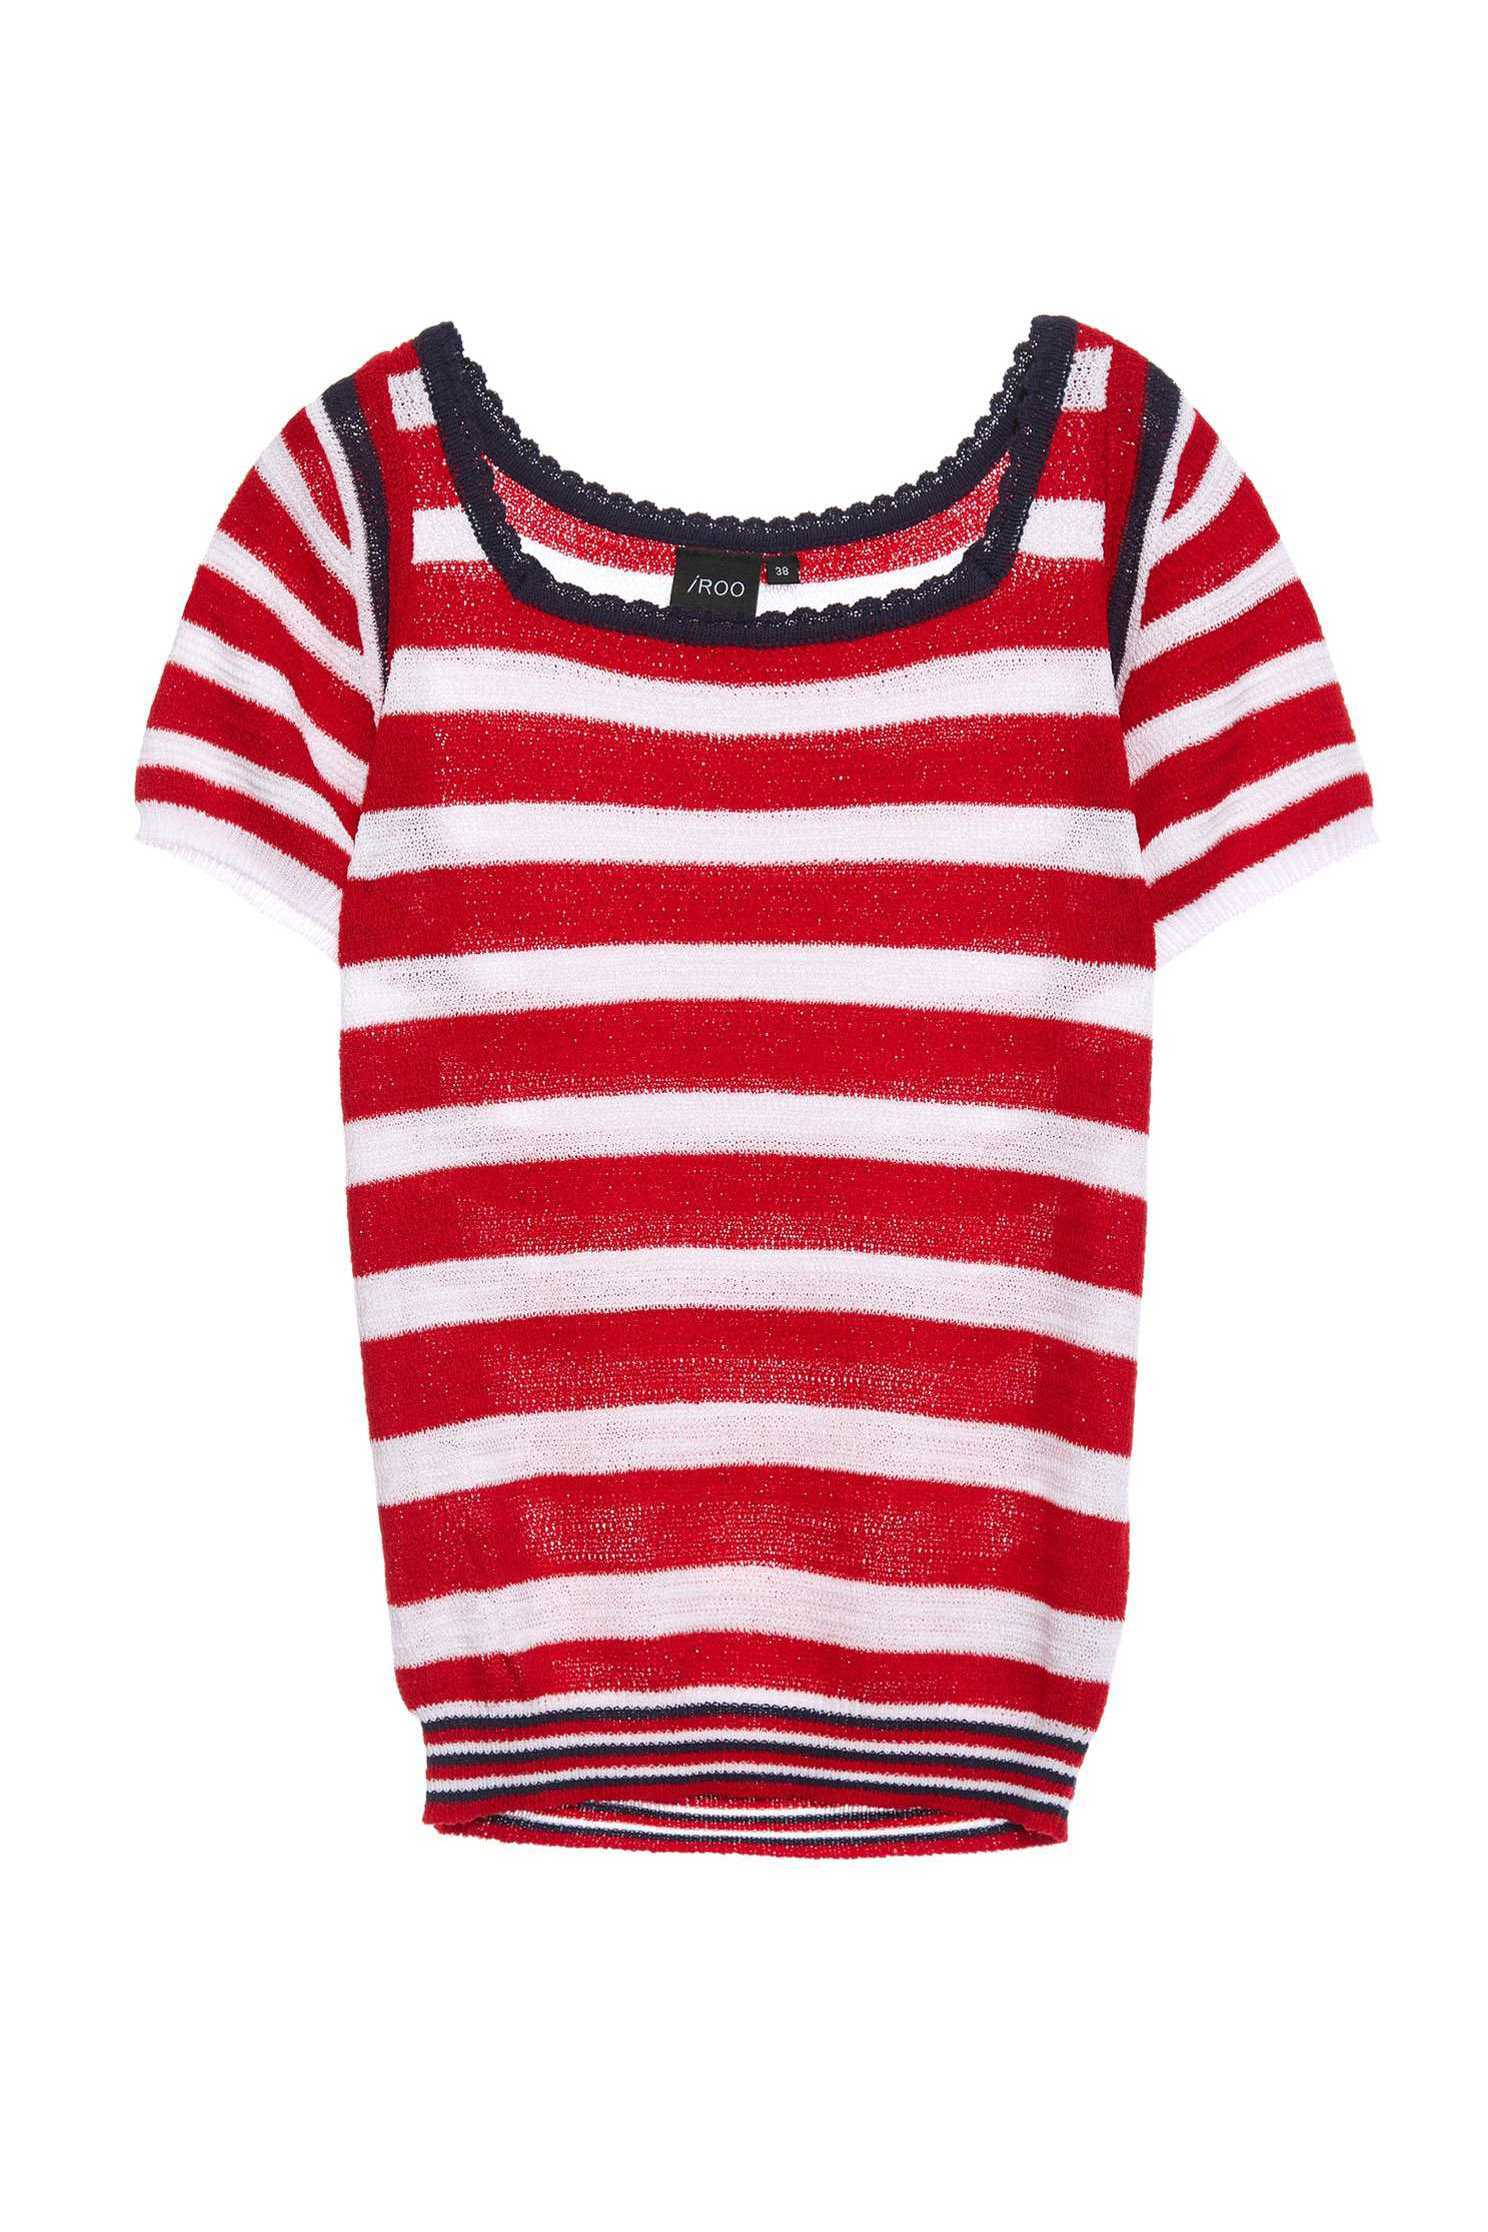 Red and white striped knitted top